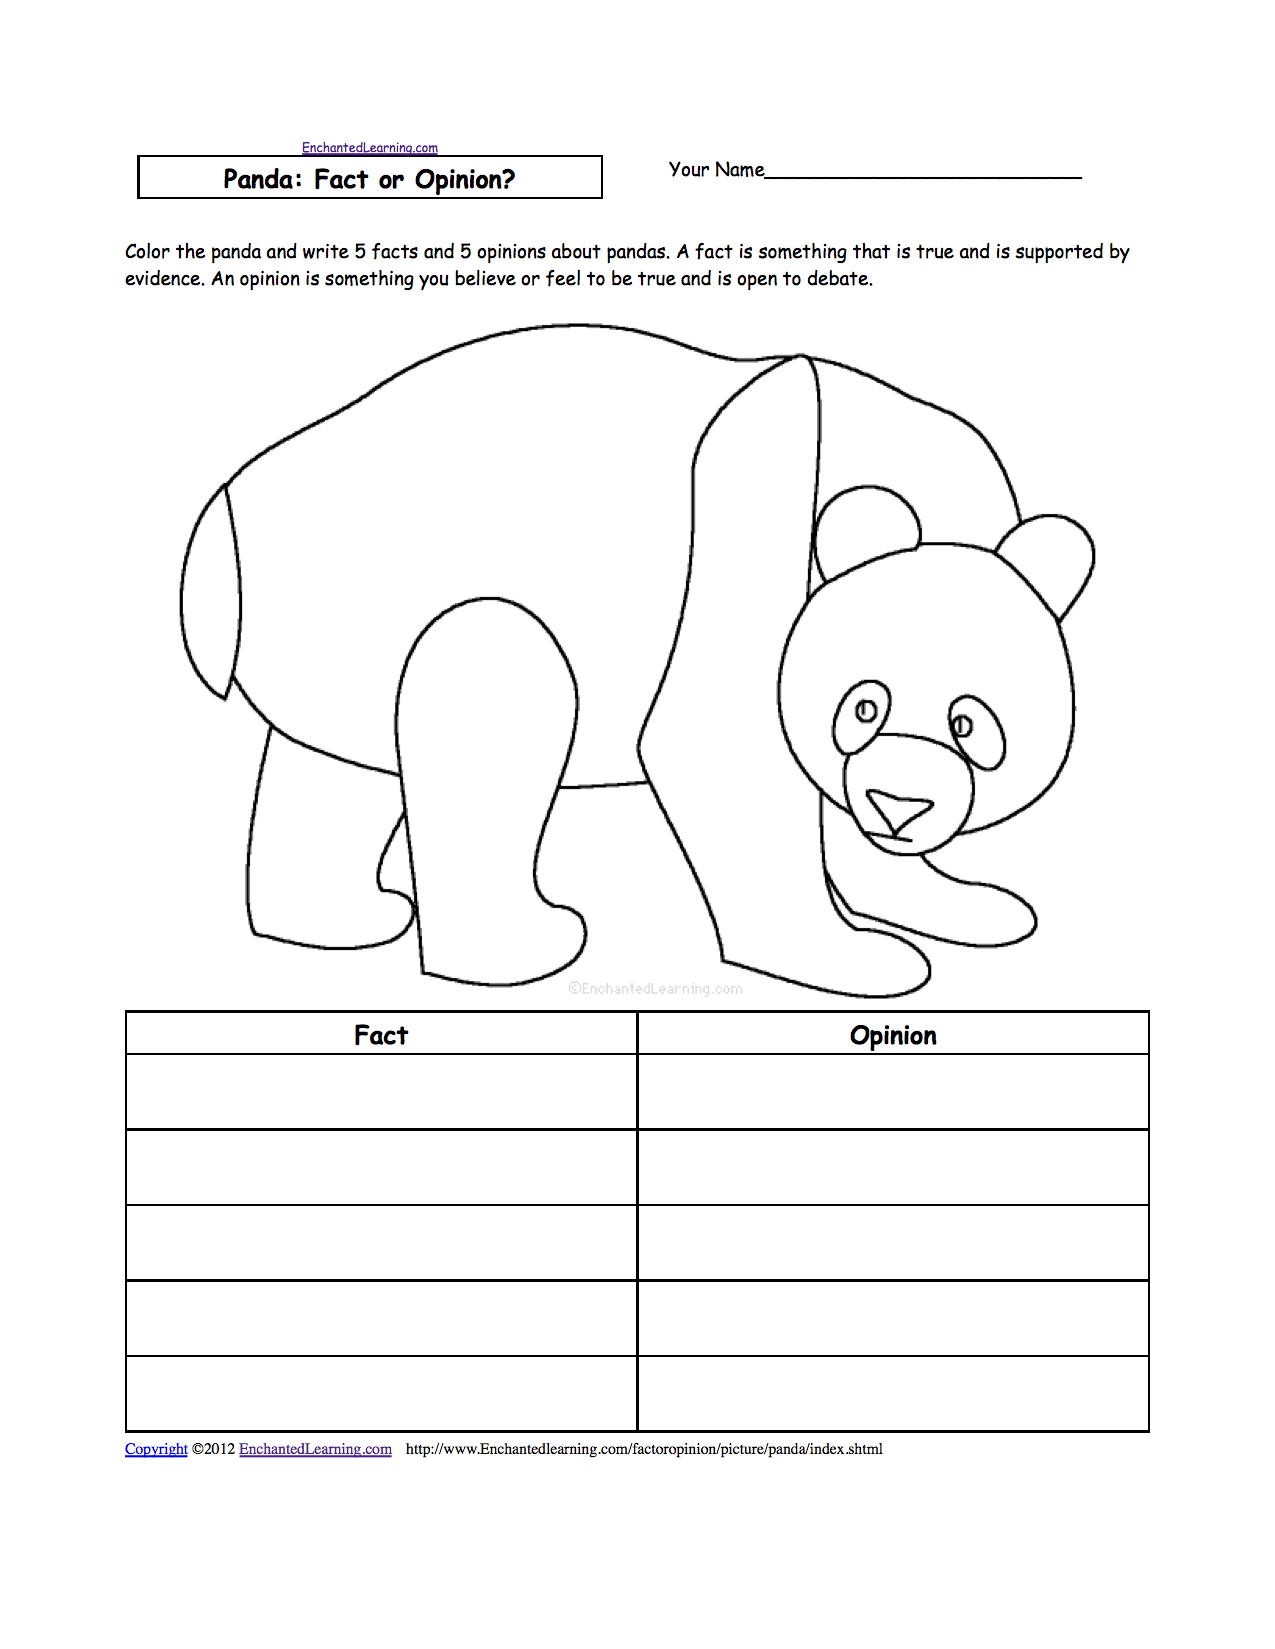 Worksheets Opinion Worksheets fact or opinion worksheets to print enchantedlearning com color and write facts opinions